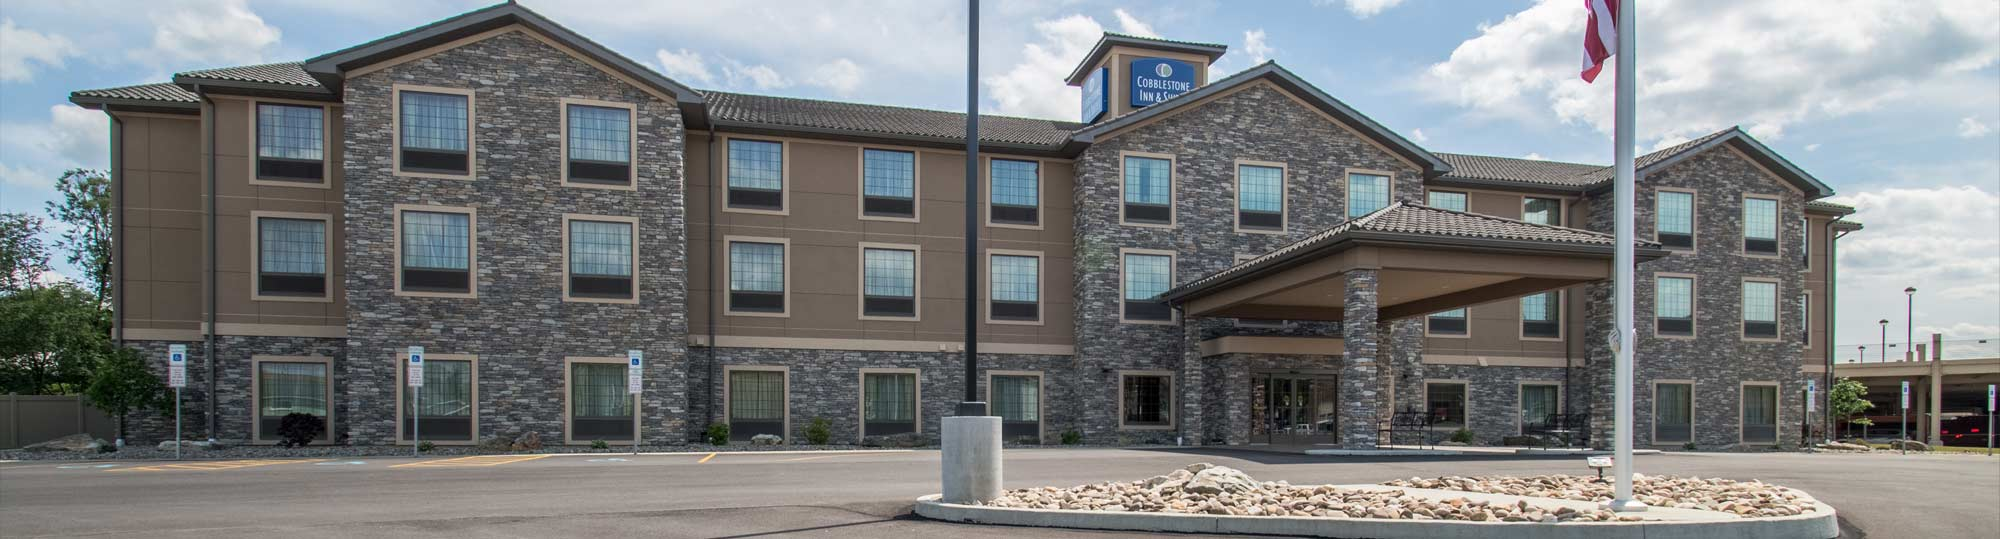 Cobblestone Inn and Suites Medina